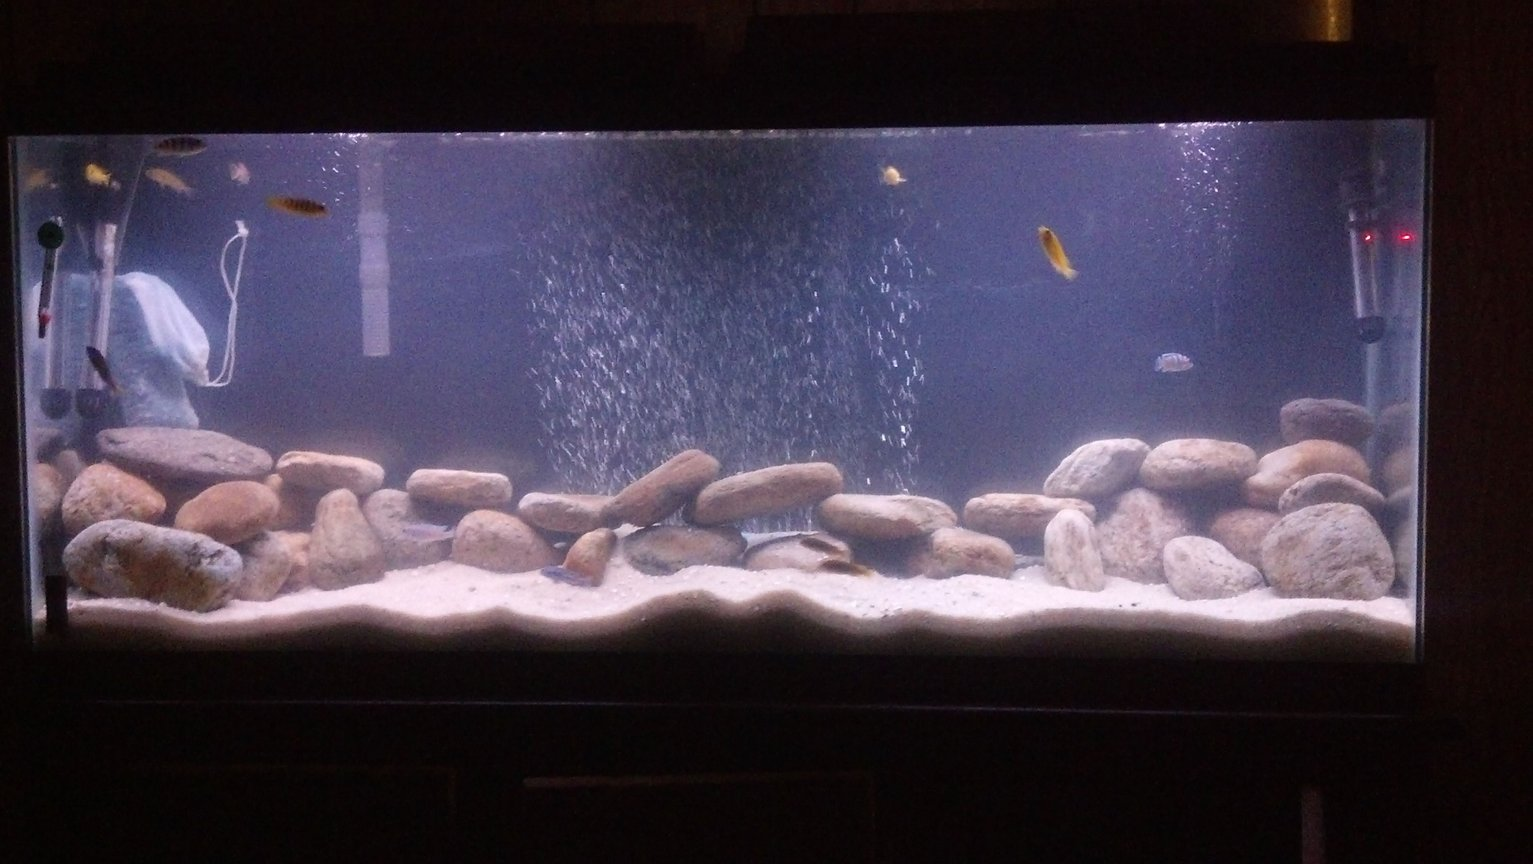 55 gallons freshwater fish tank (mostly fish and non-living decorations) - 55 gall tank for African Cichlid tank with sand and river rocks